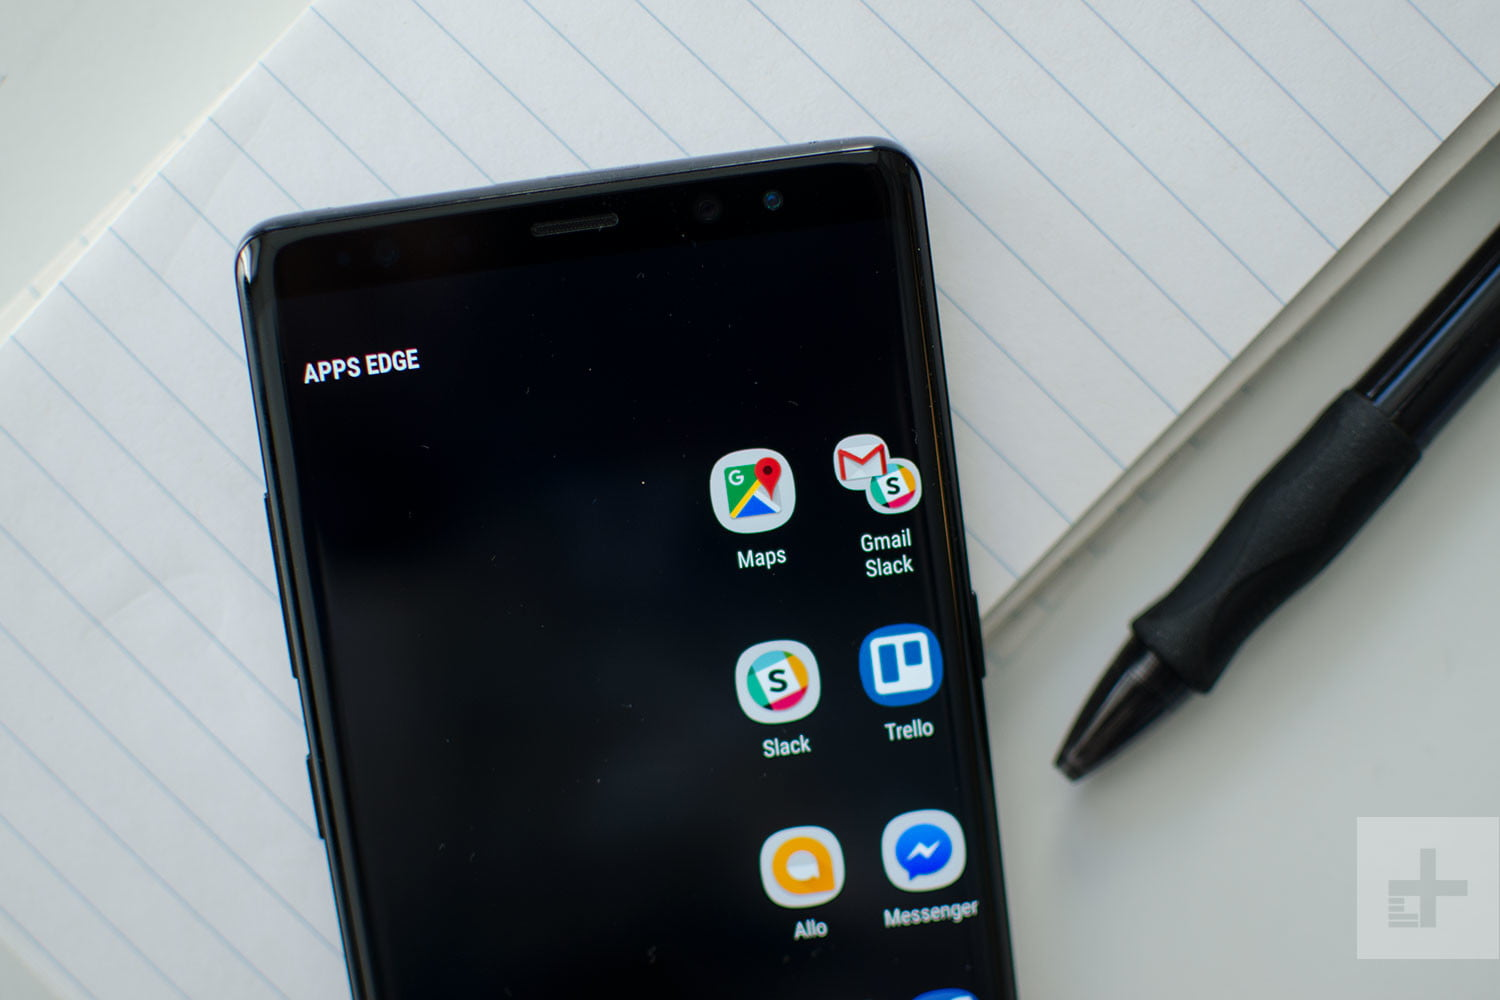 Samsung Galaxy Note 8 Review Apps Edge